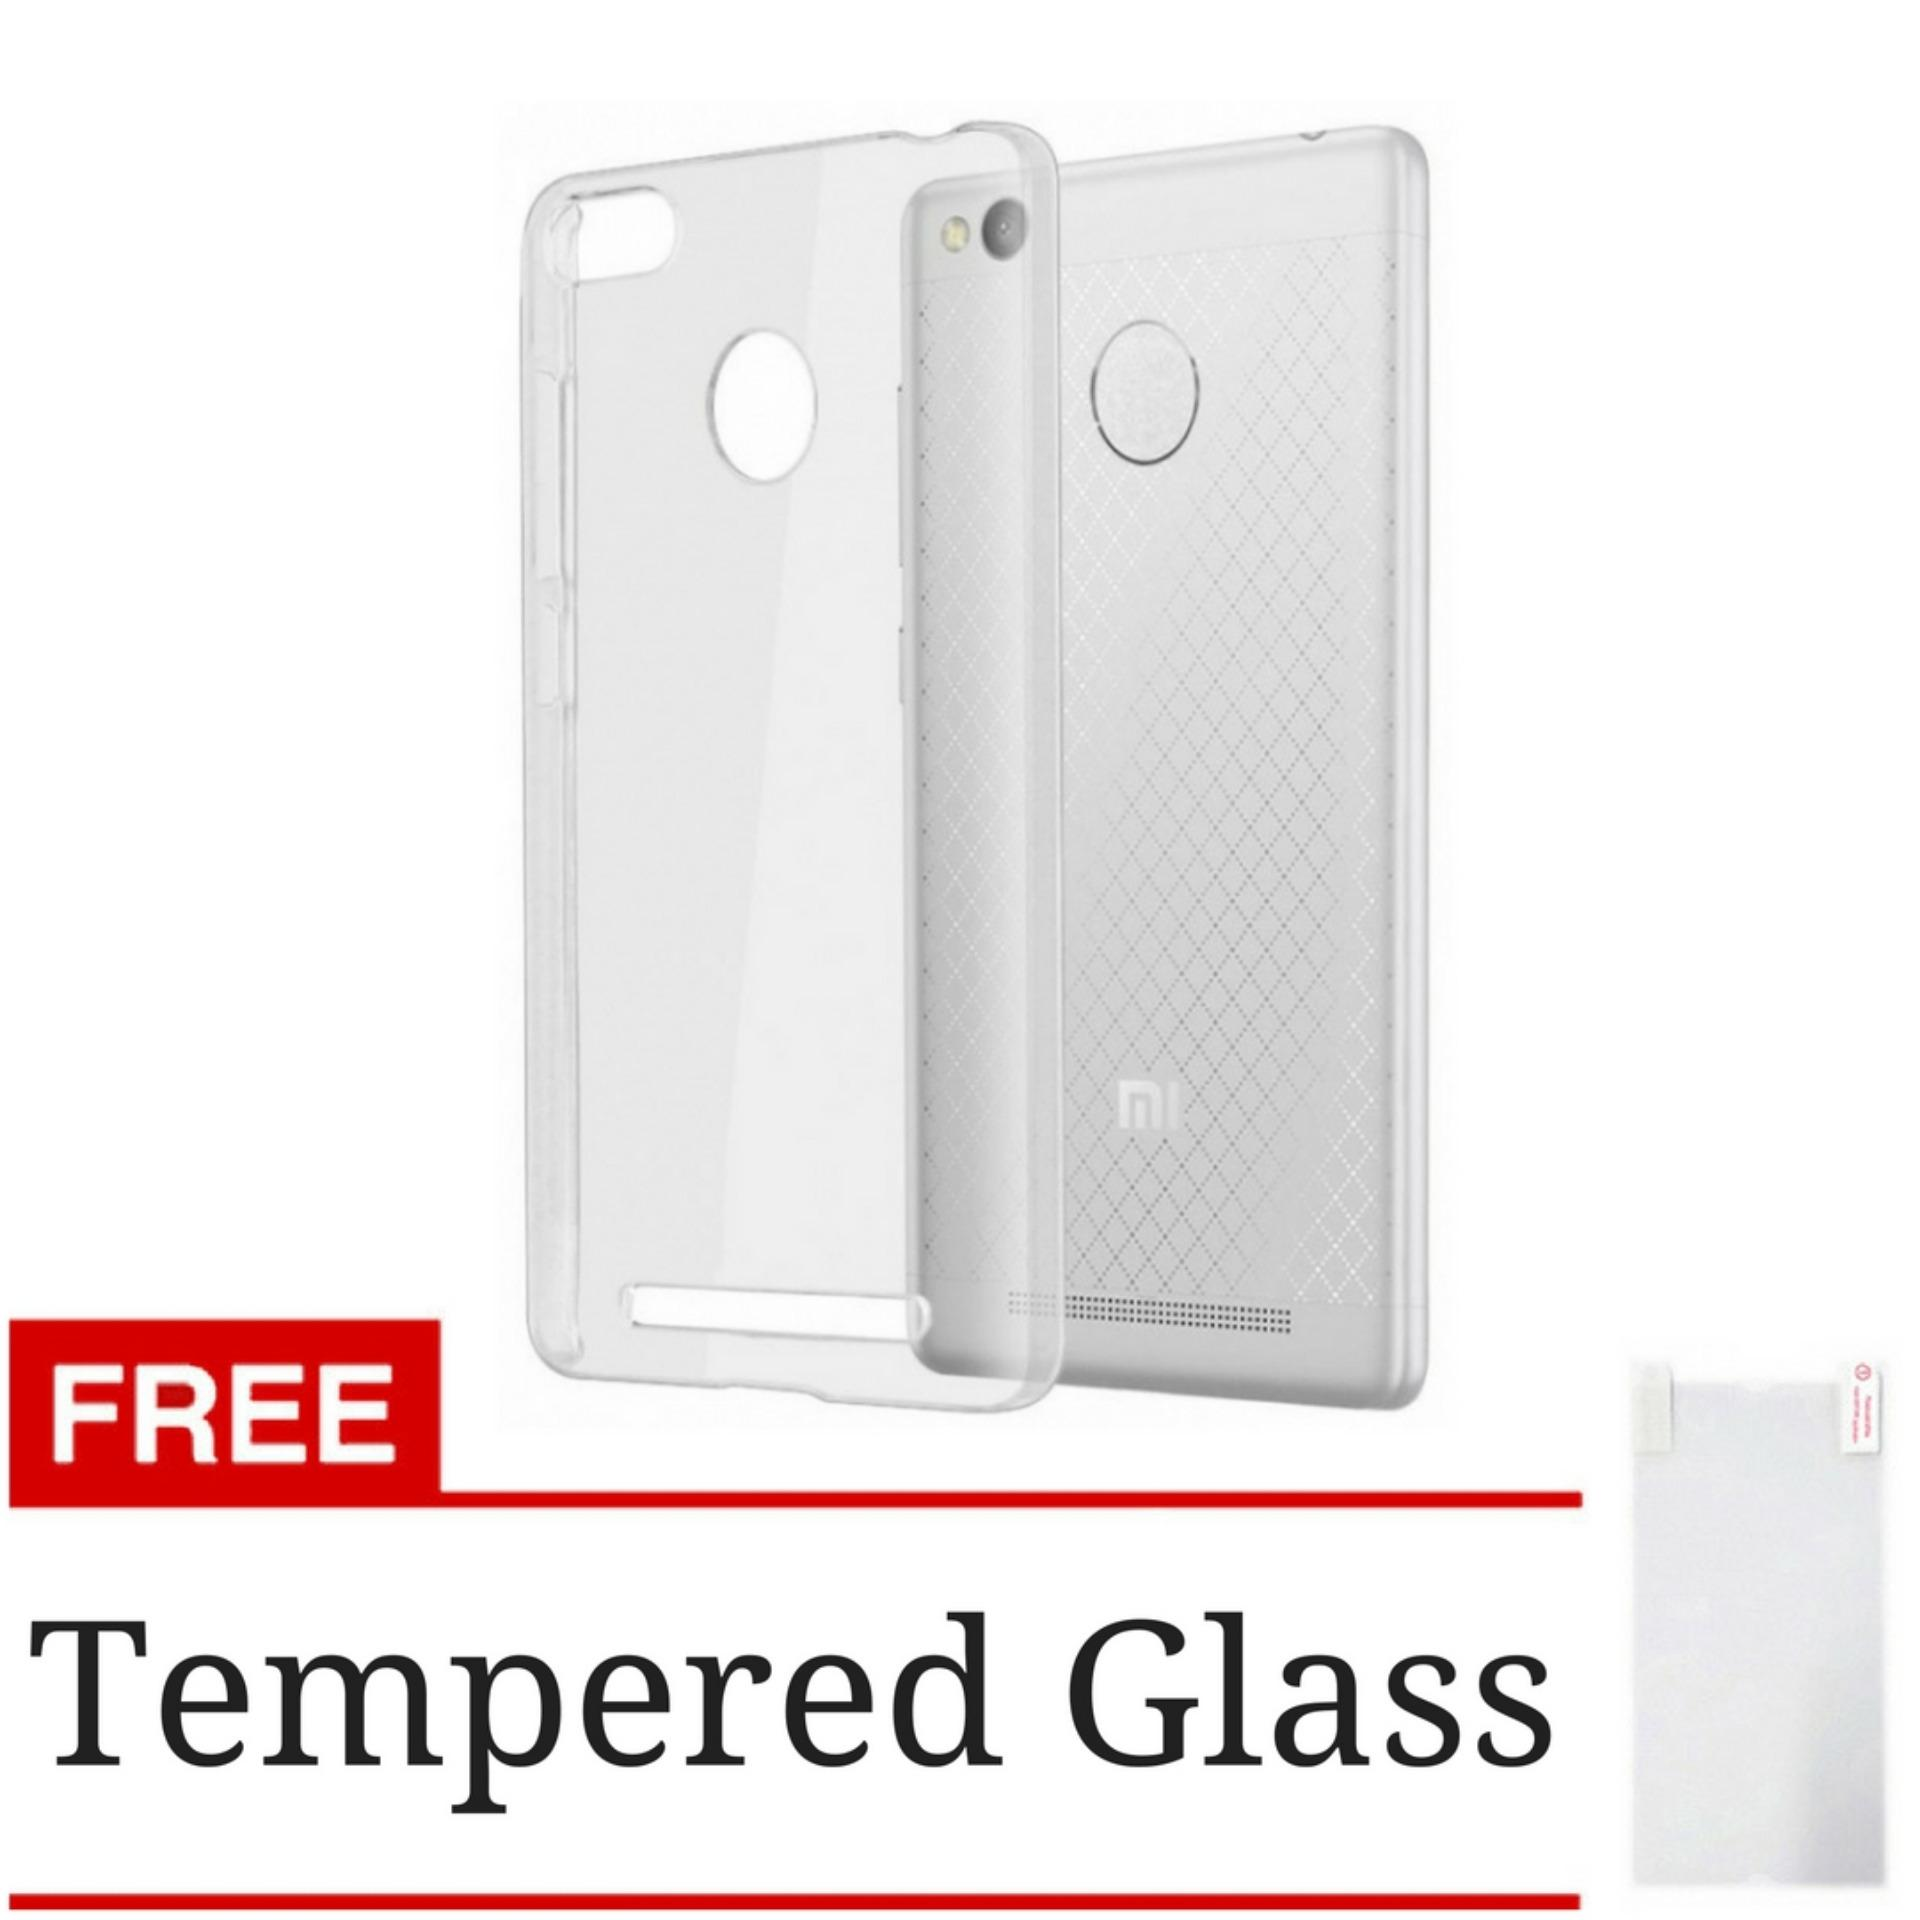 ... Freerounded Source · Abu Source Case For Xiaomi Redmi 4a Ultrahin Air Case Series Clear Free Source Case Xiaomi